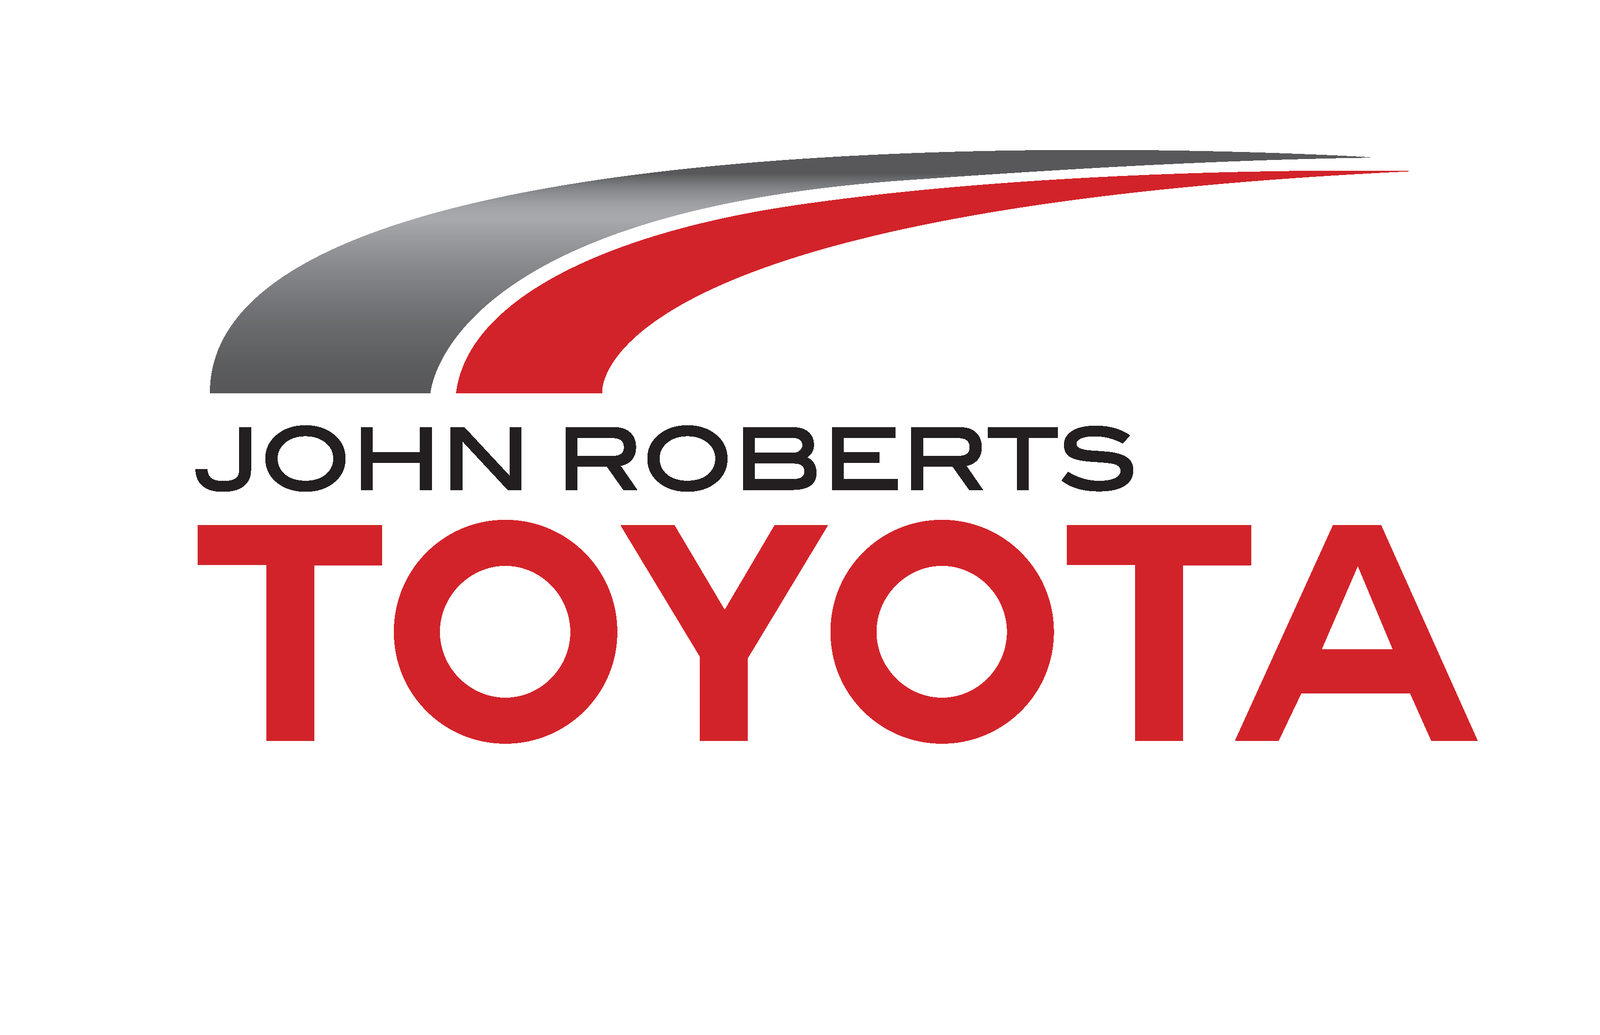 John roberts toyota manchester tennessee